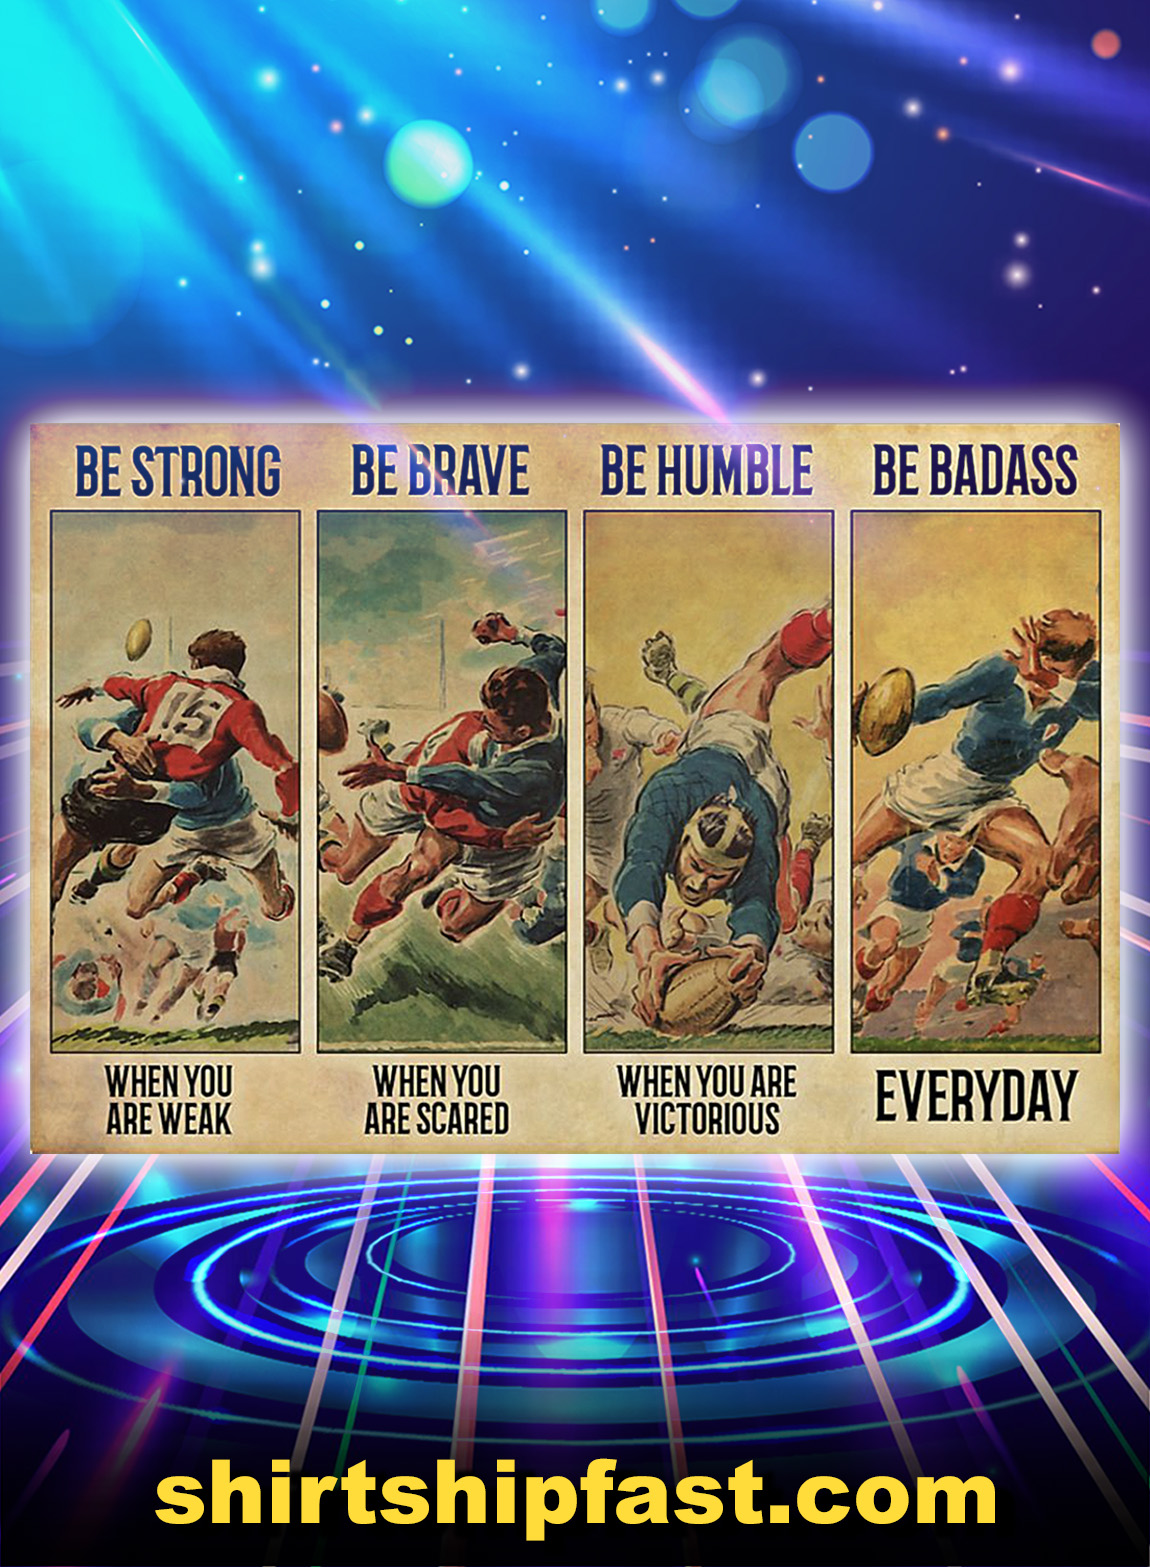 Rugby be strong be brave be humble be badass poster - A3